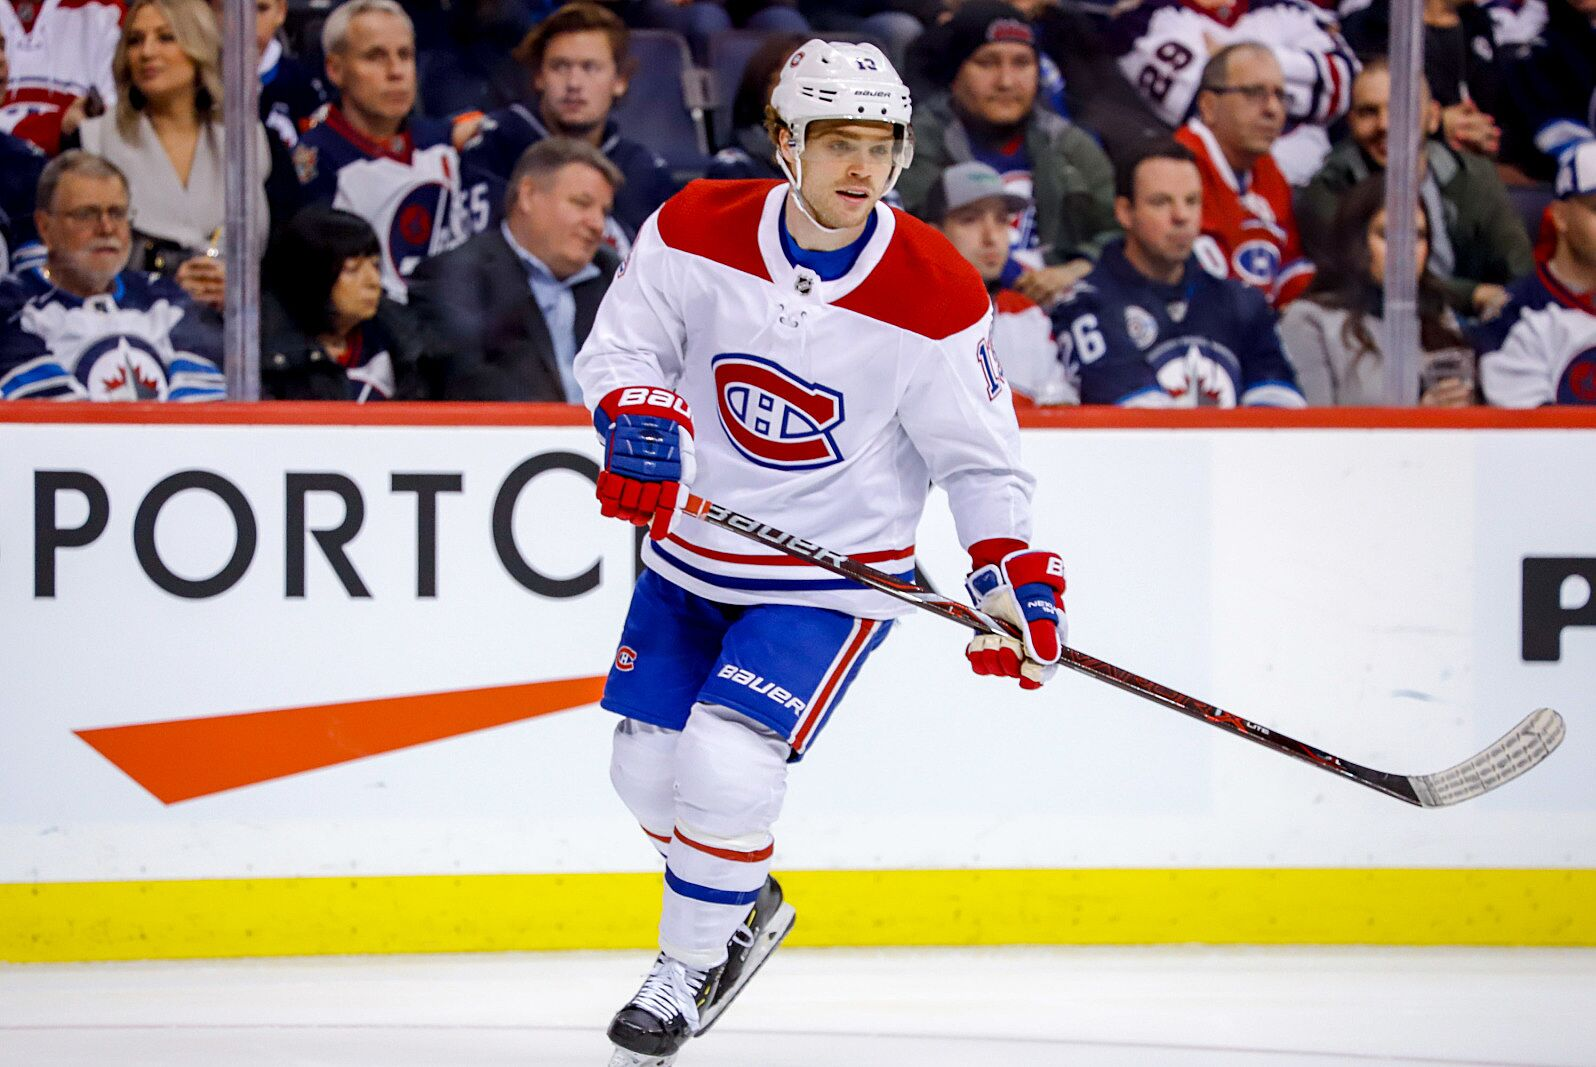 Max Domi is not the player the Montreal Canadiens trade to